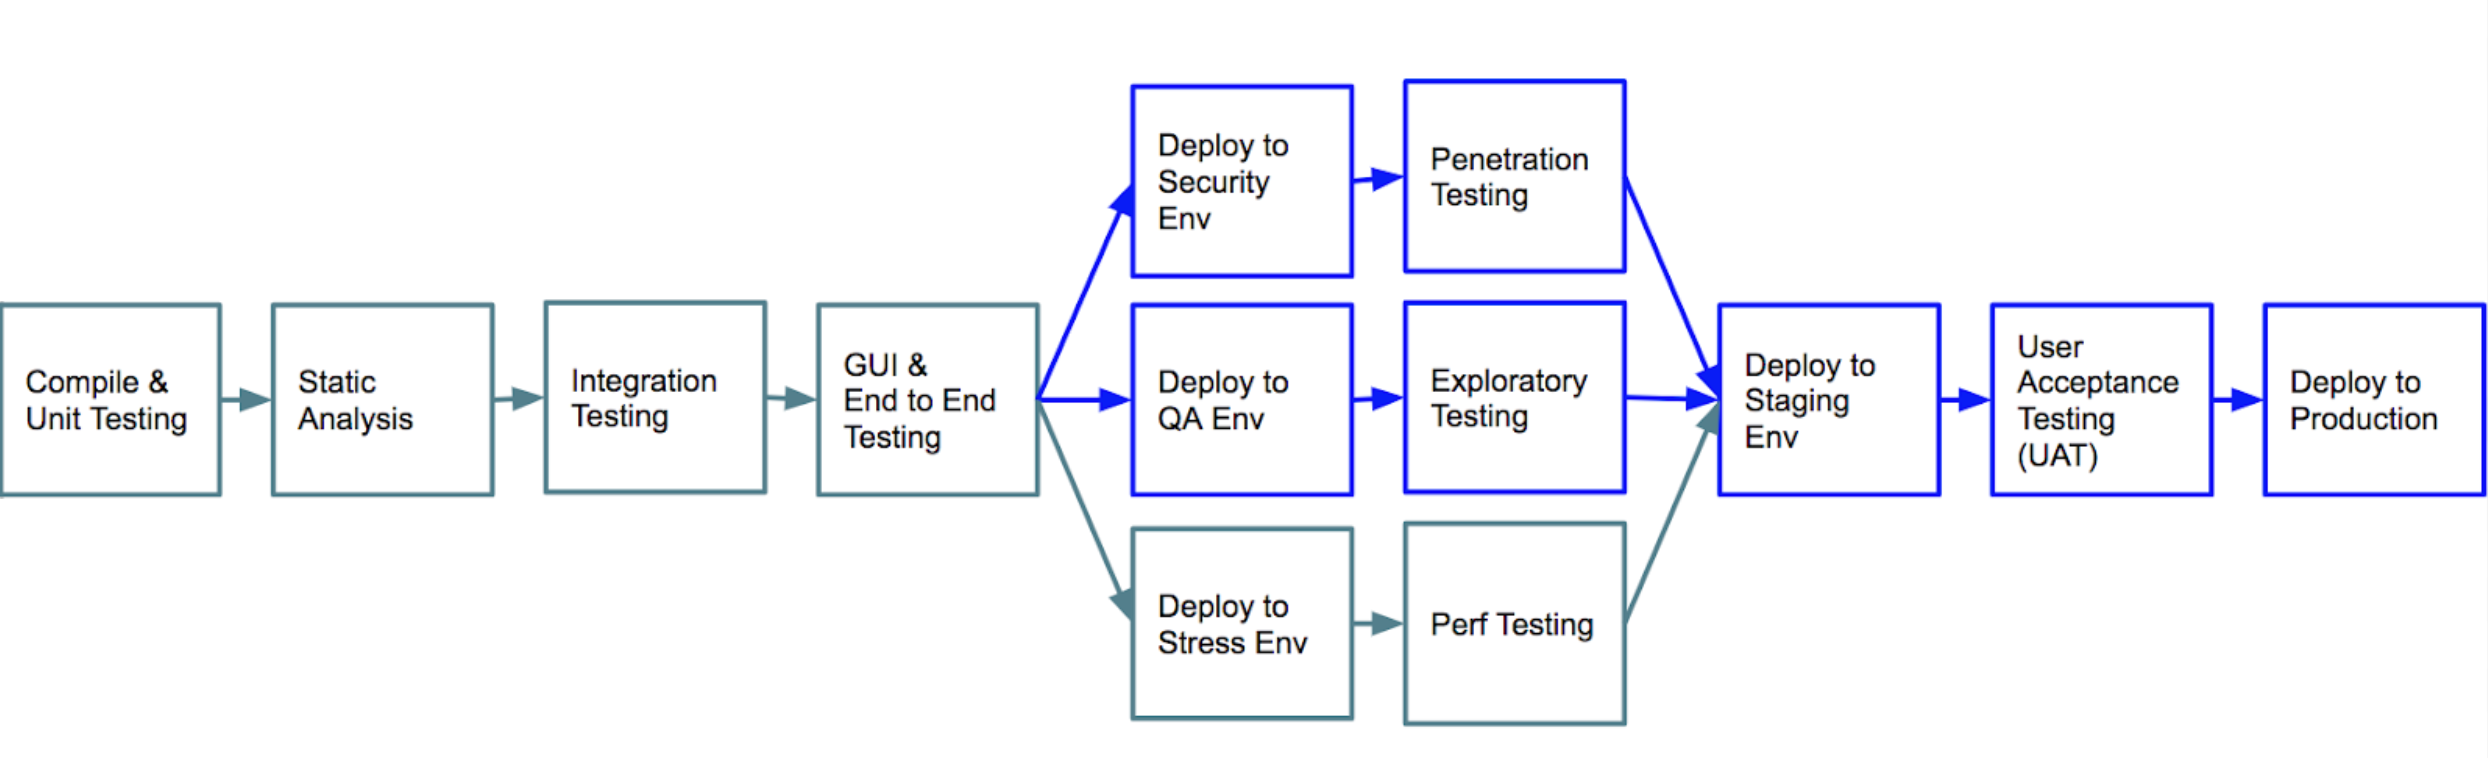 A diagram showing an example deployment pipeline.